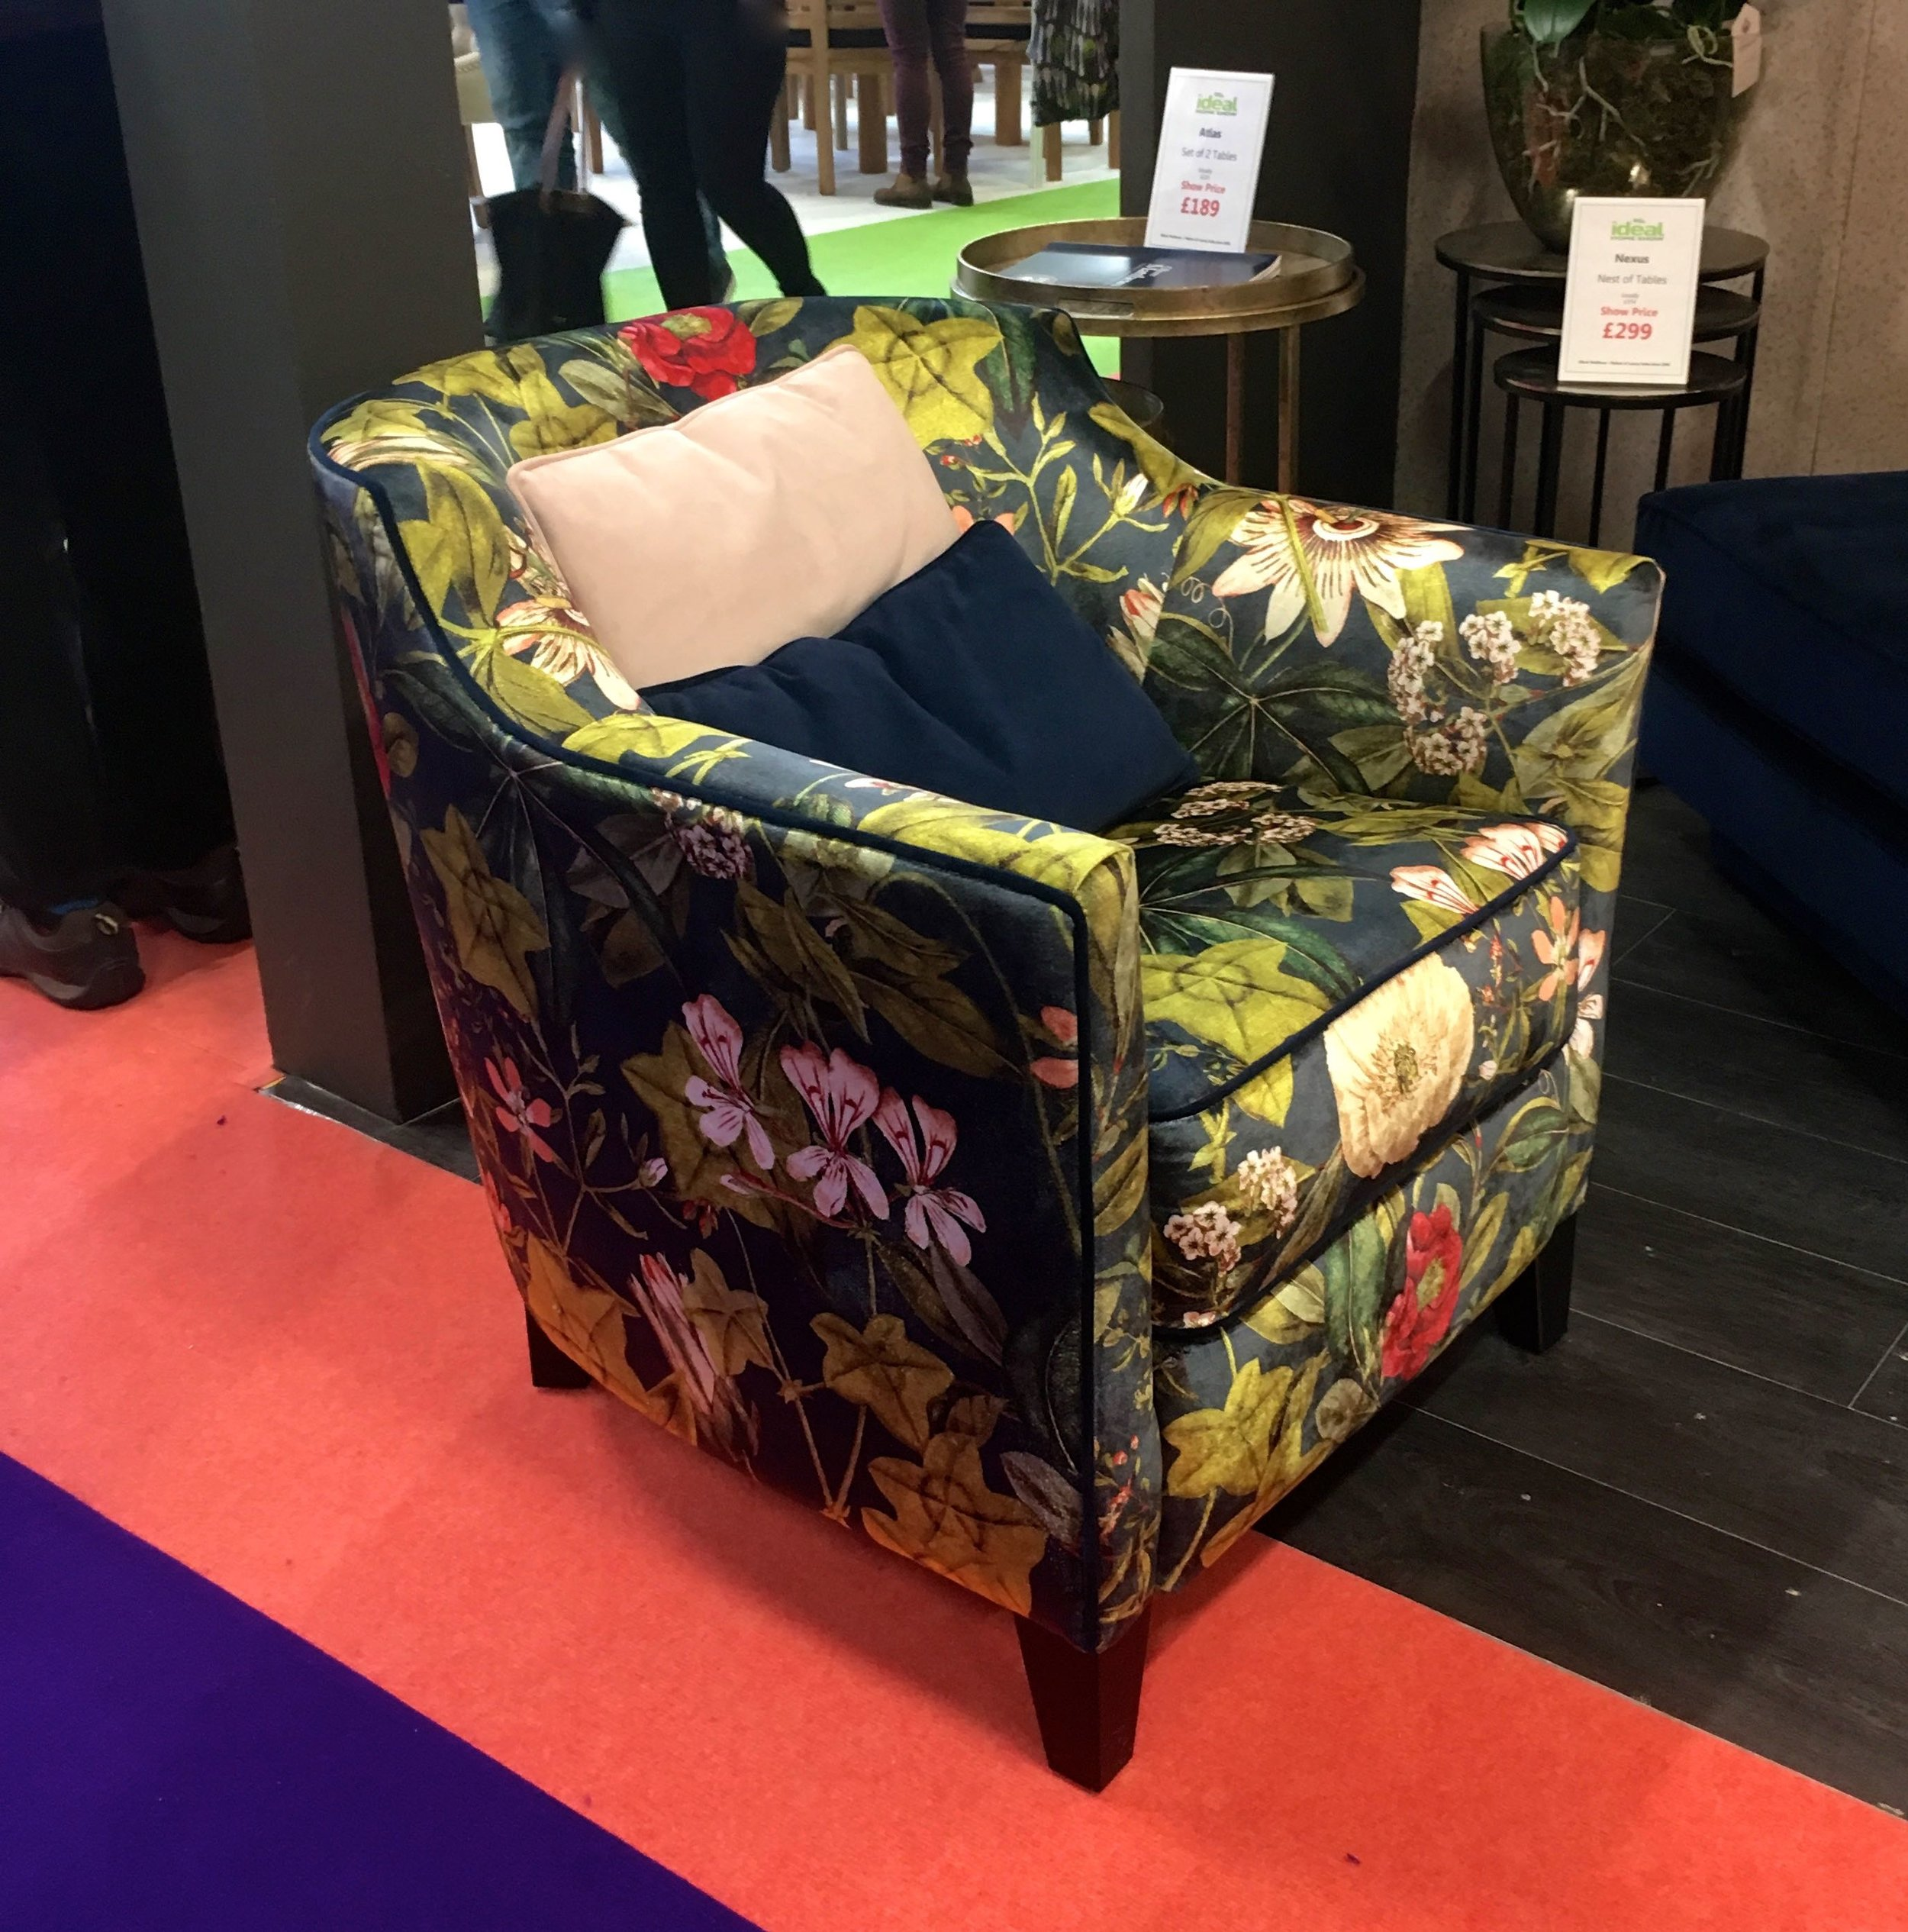 A PATTERNED CHAIR